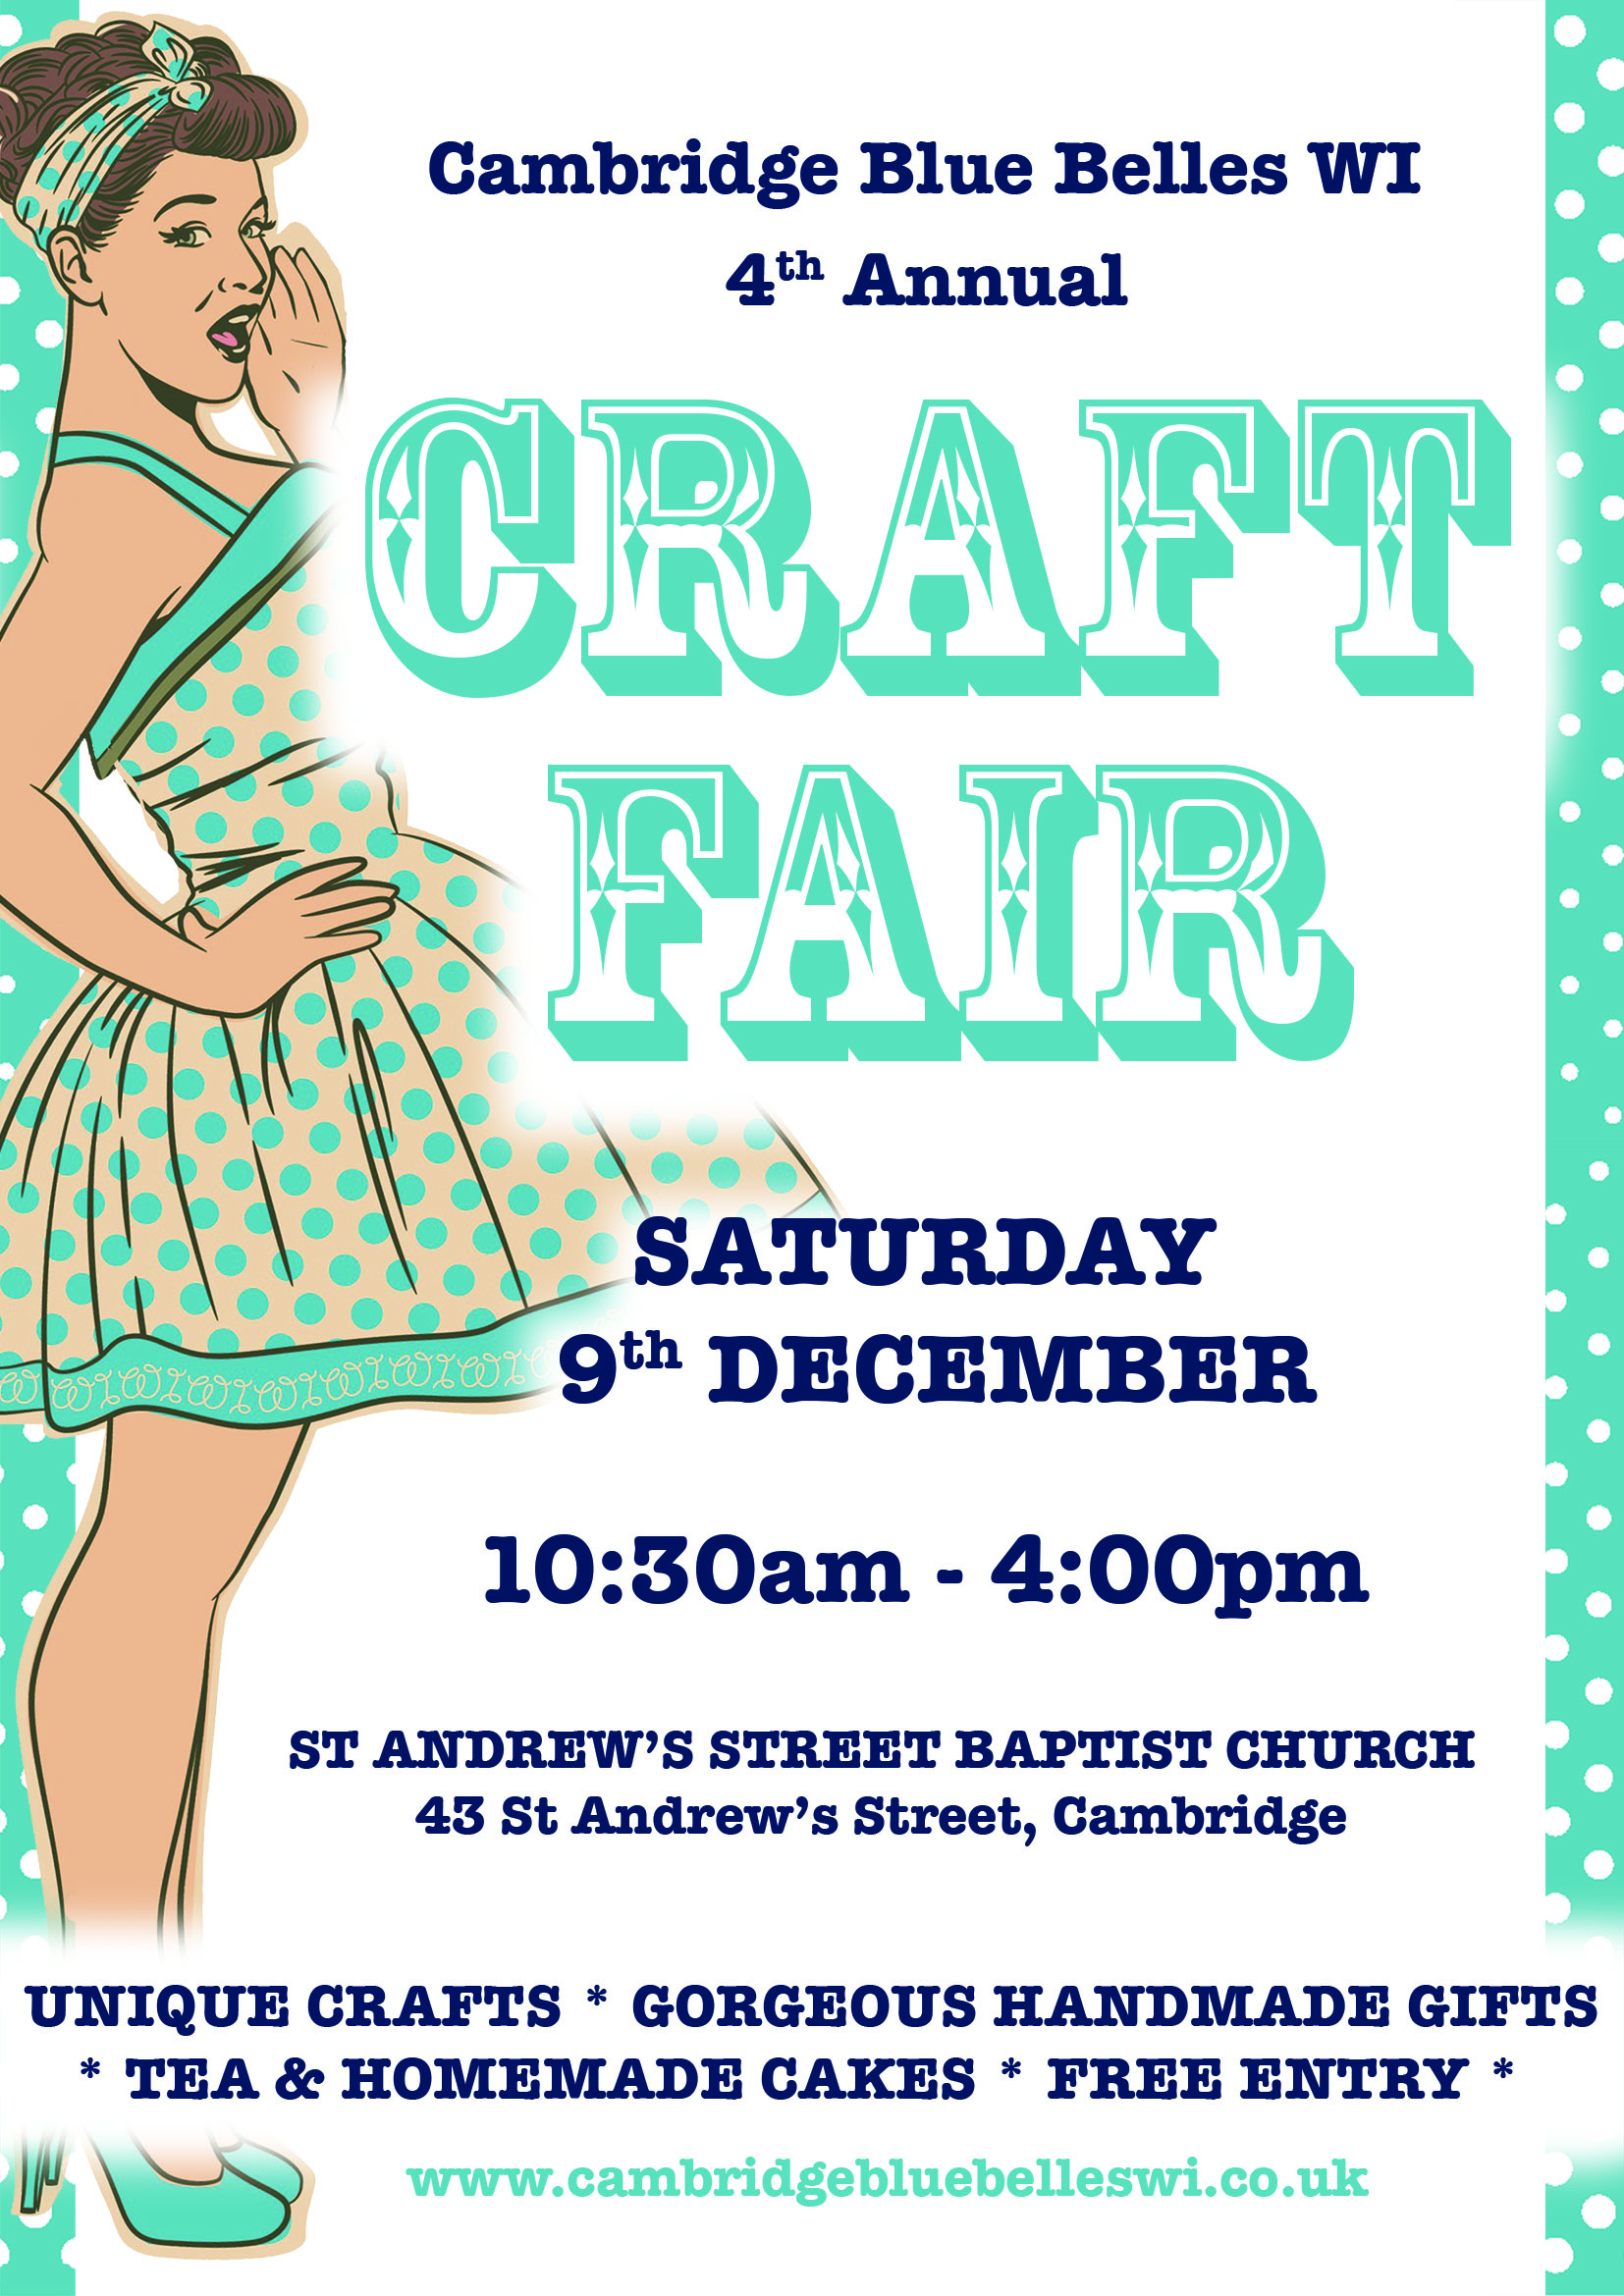 Cambridge Wi Craft Fair